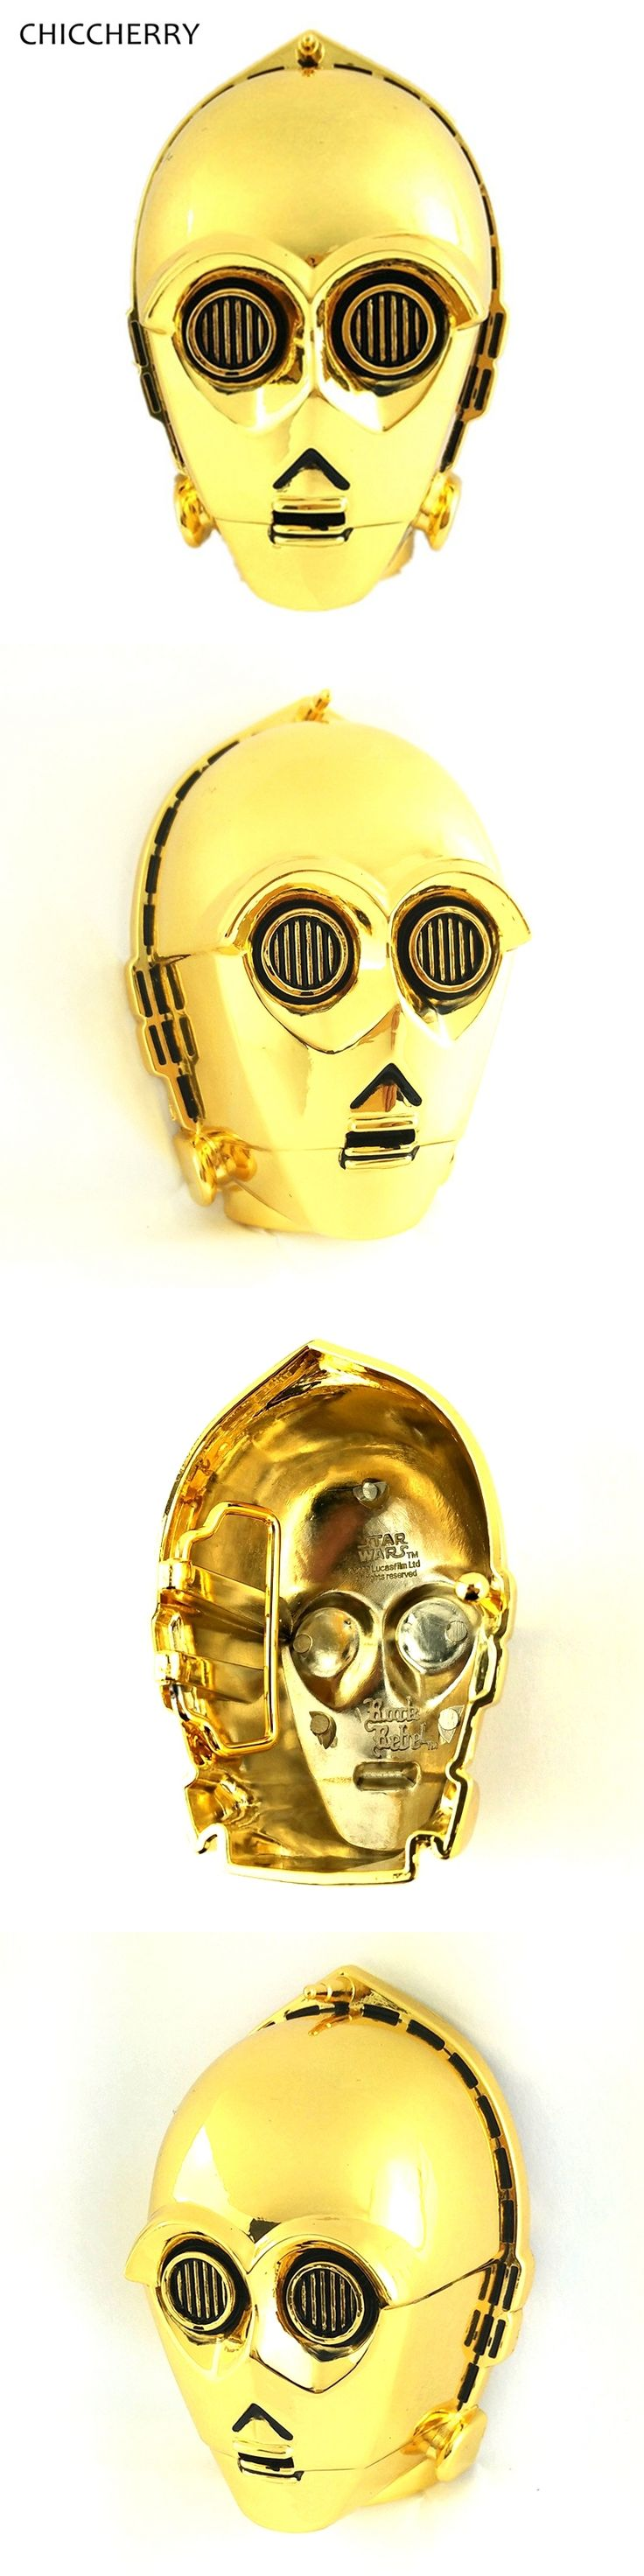 Famous Movie C-3PO Star Wars Metal Gold Fnish Color Western 3D Belt Buckles Mens Cowboys-Belt-Buckles For Men 4cm Wide Belts